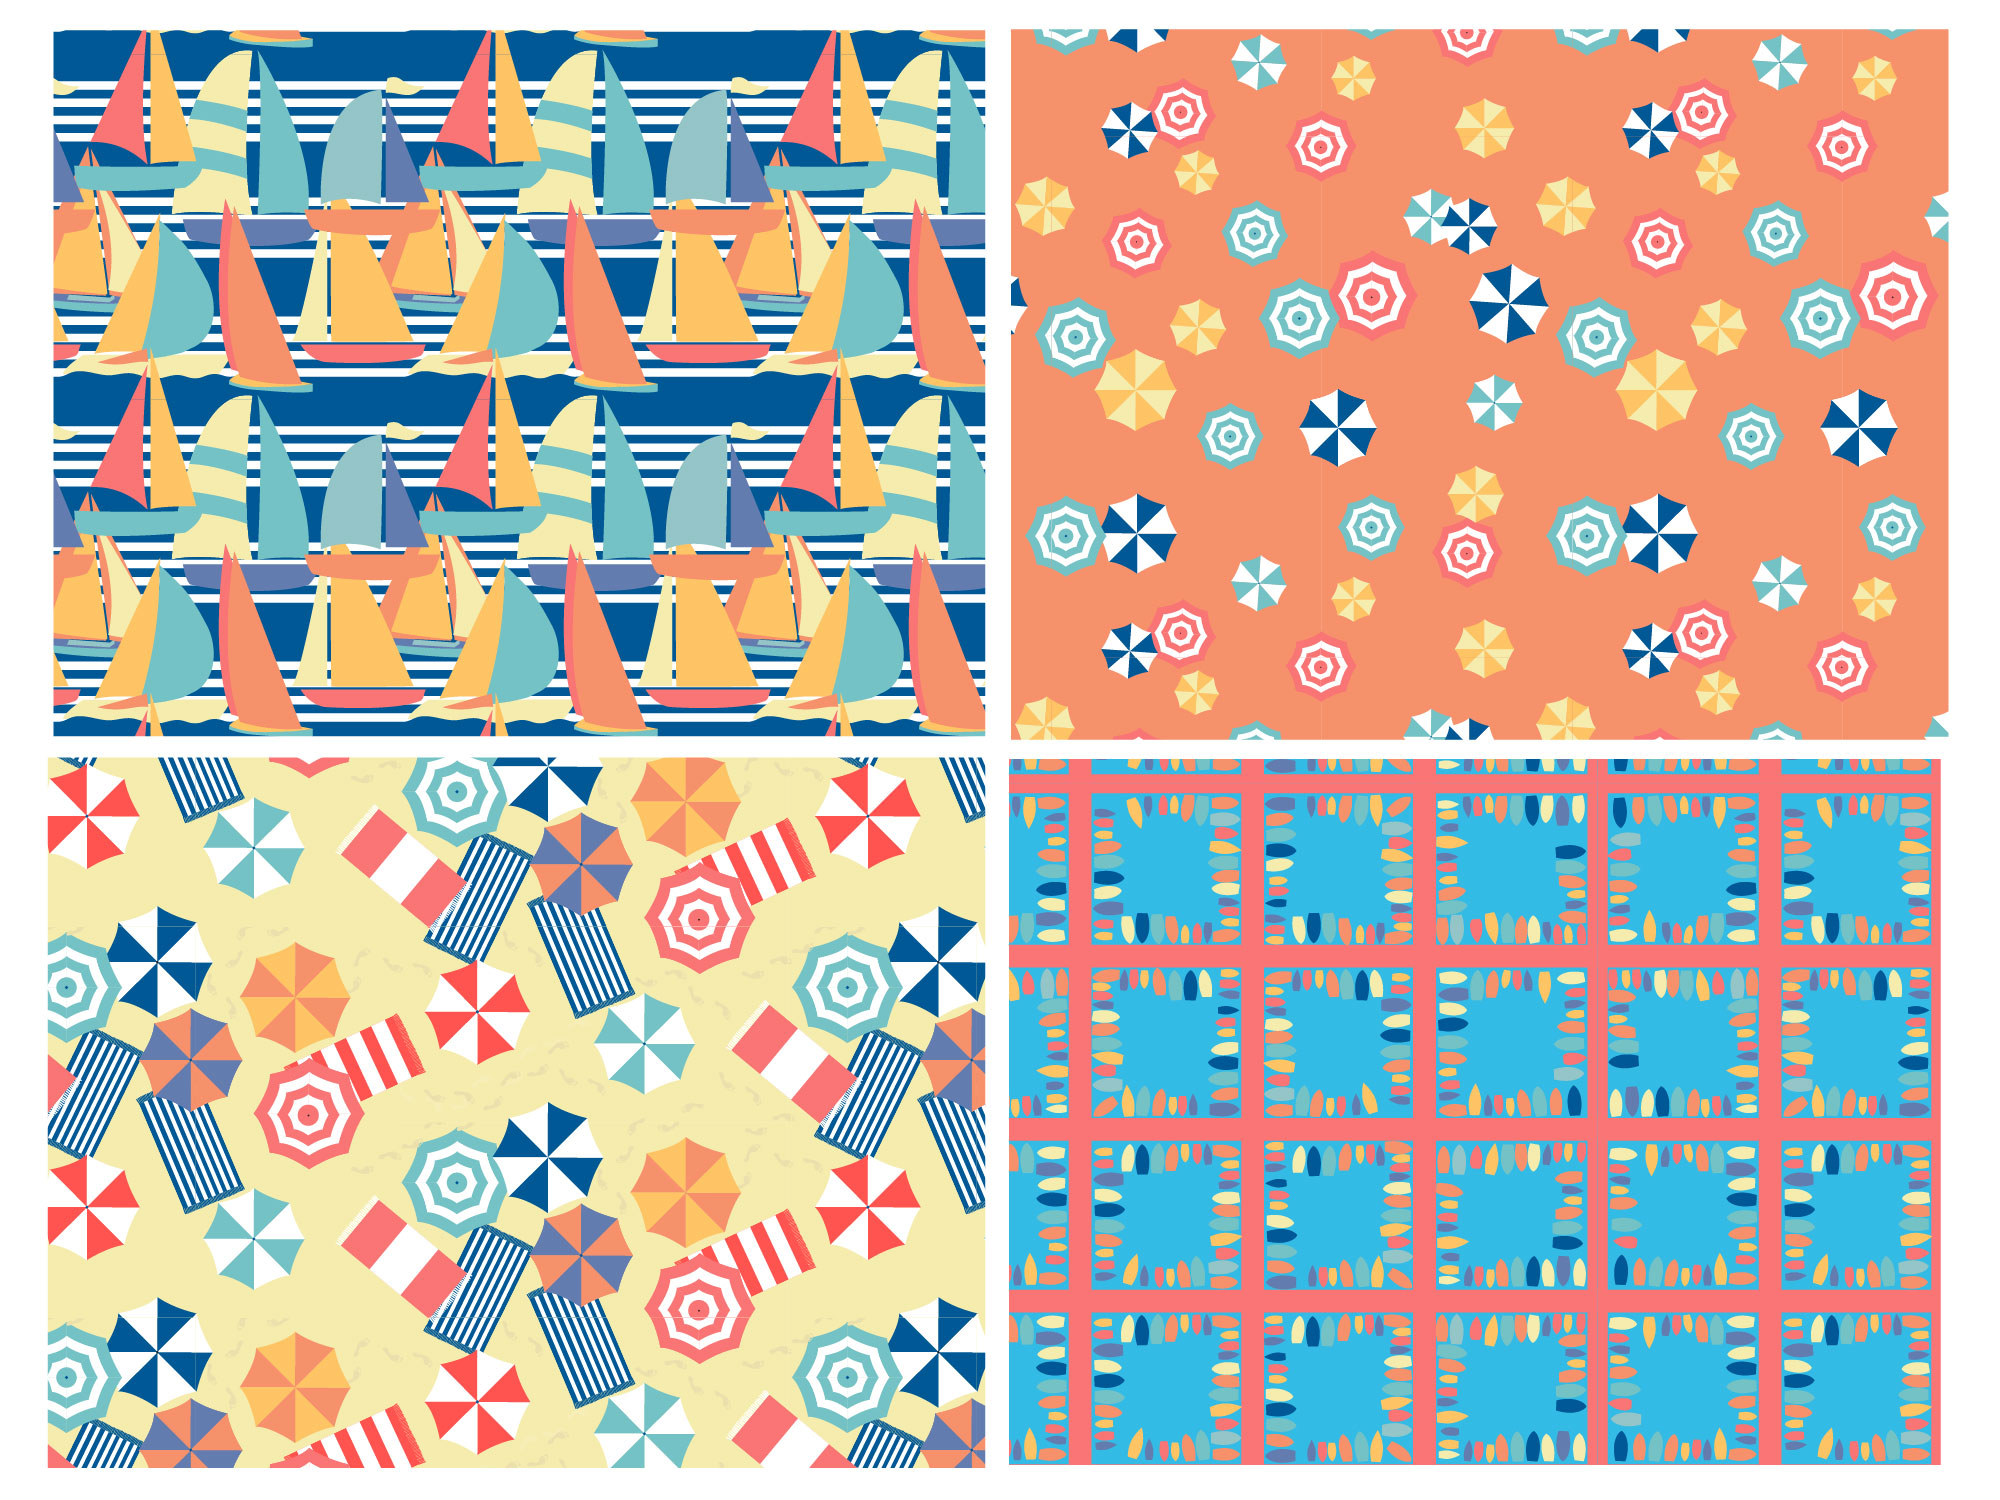 pattern for squarespace french riviera-01.jpg